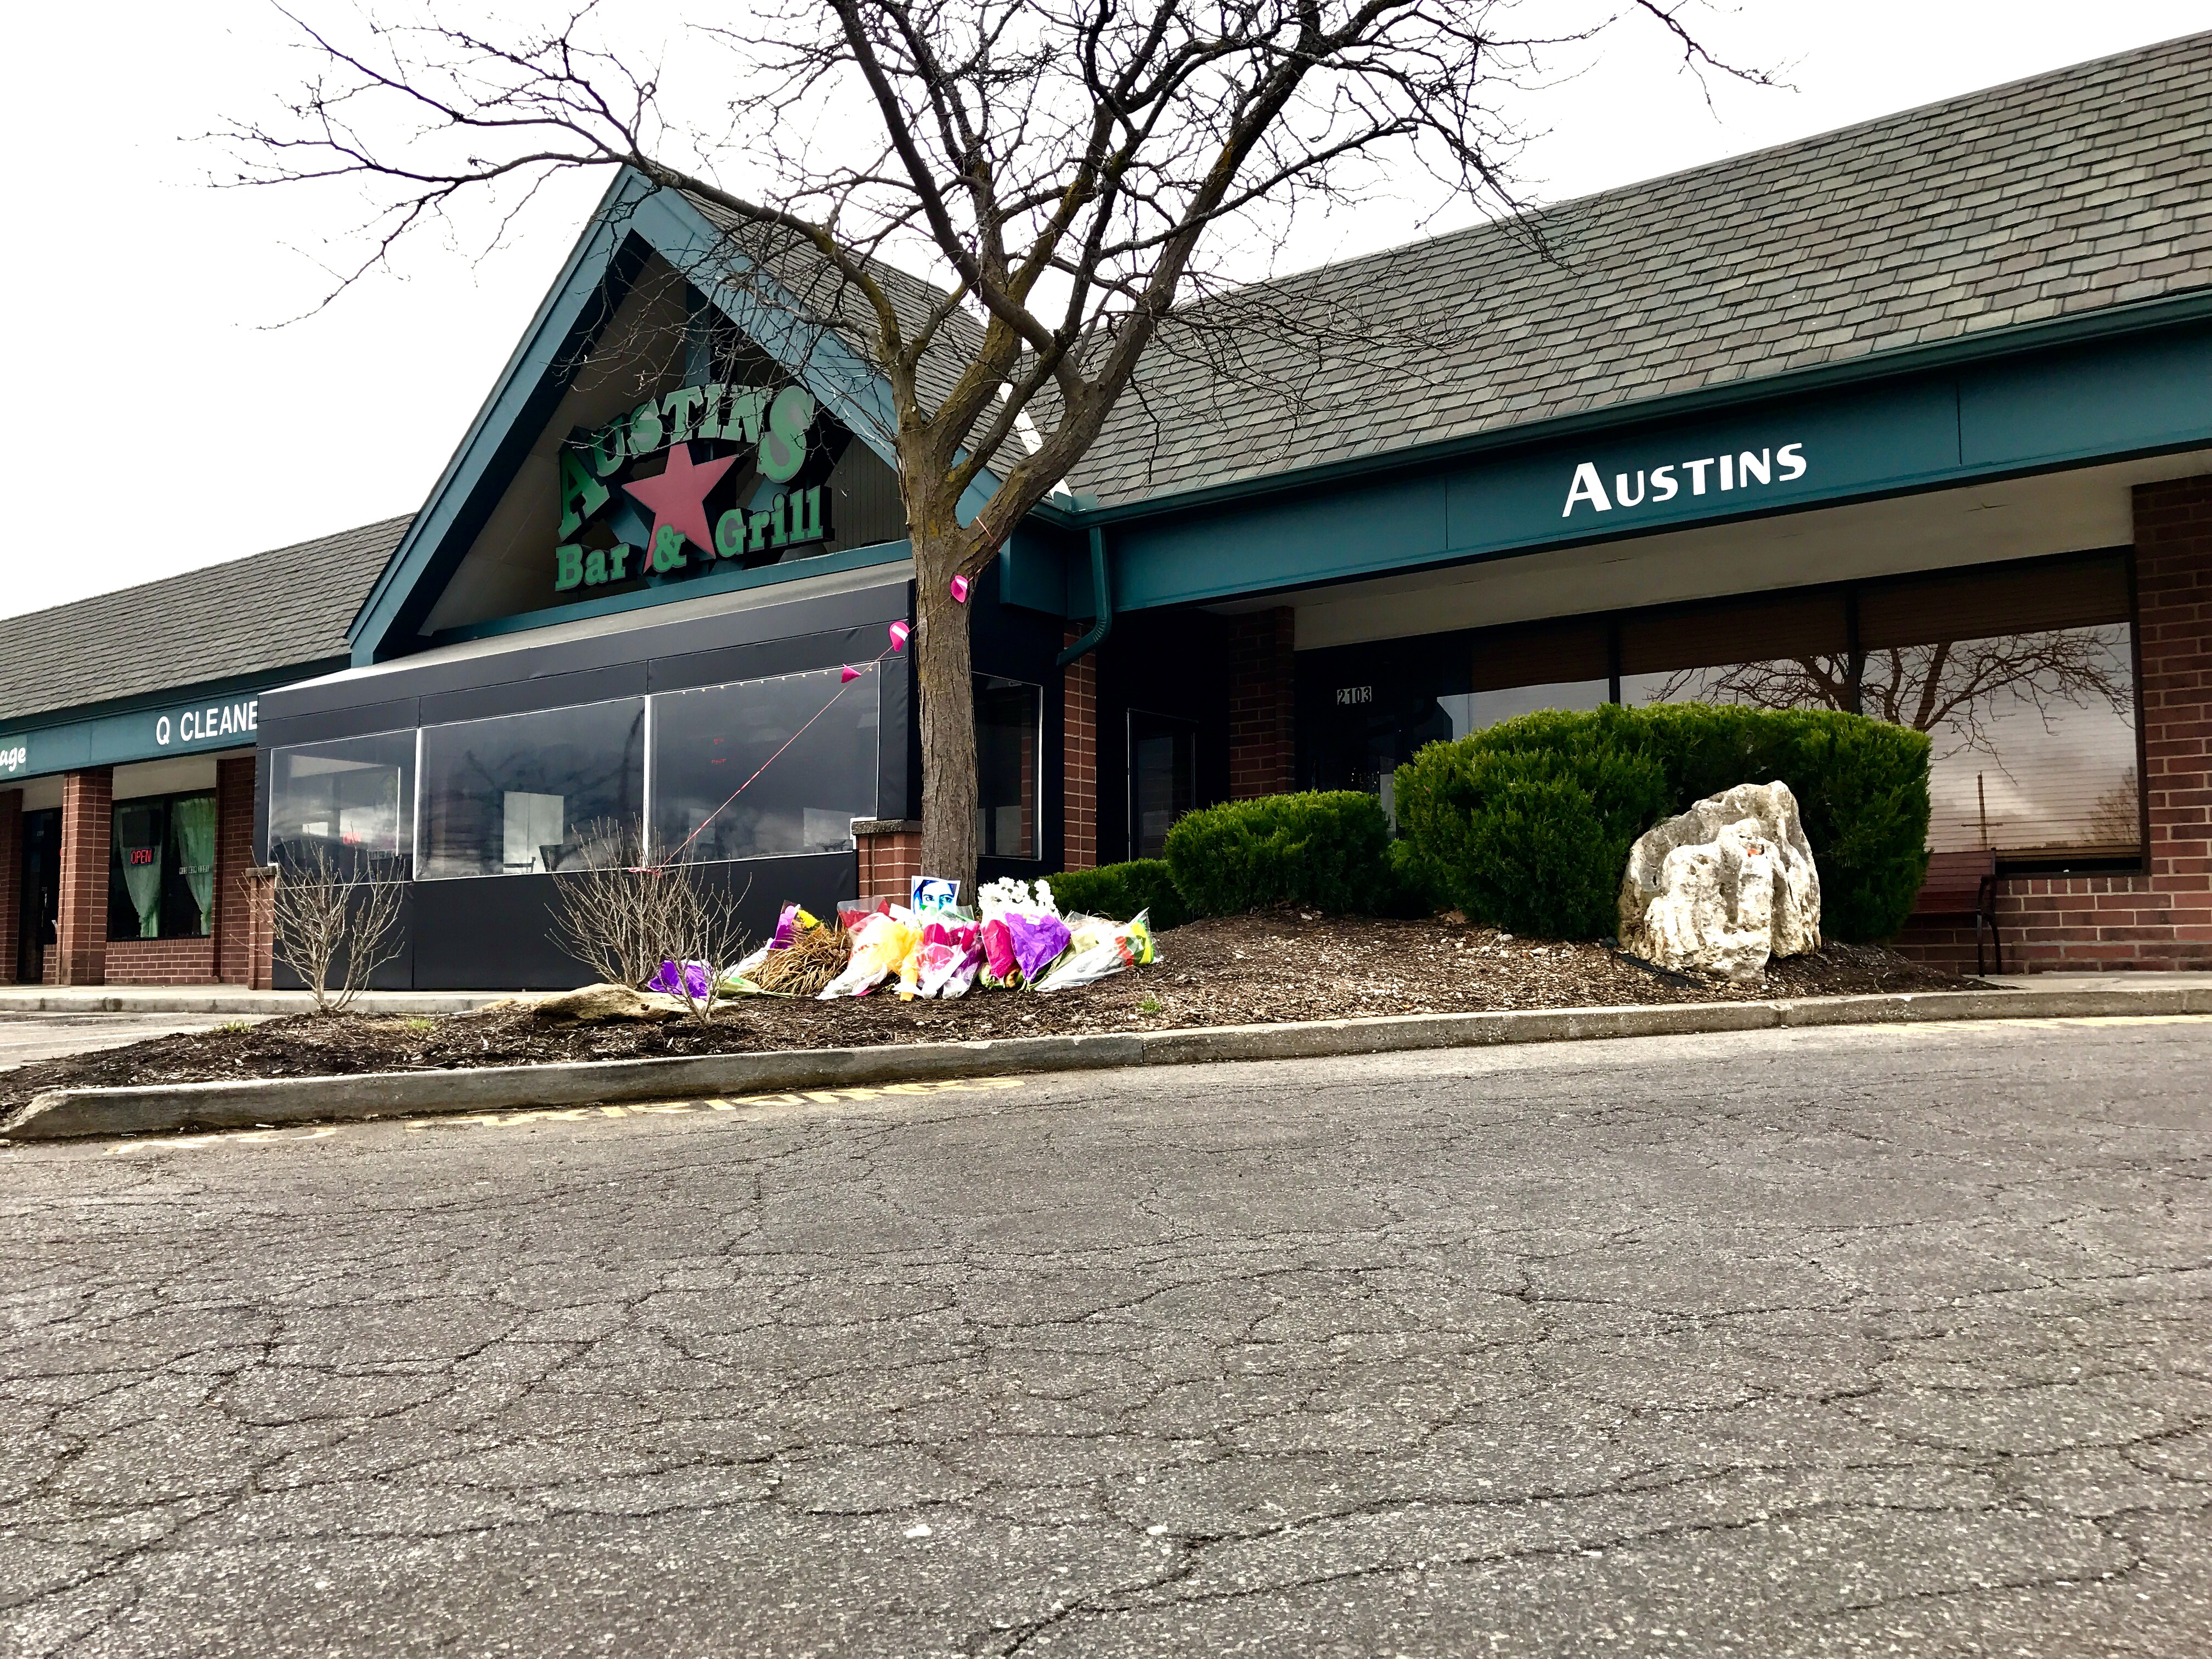 A memorial for the shooting victims was growing outside of Austins Bar and Grill Friday.